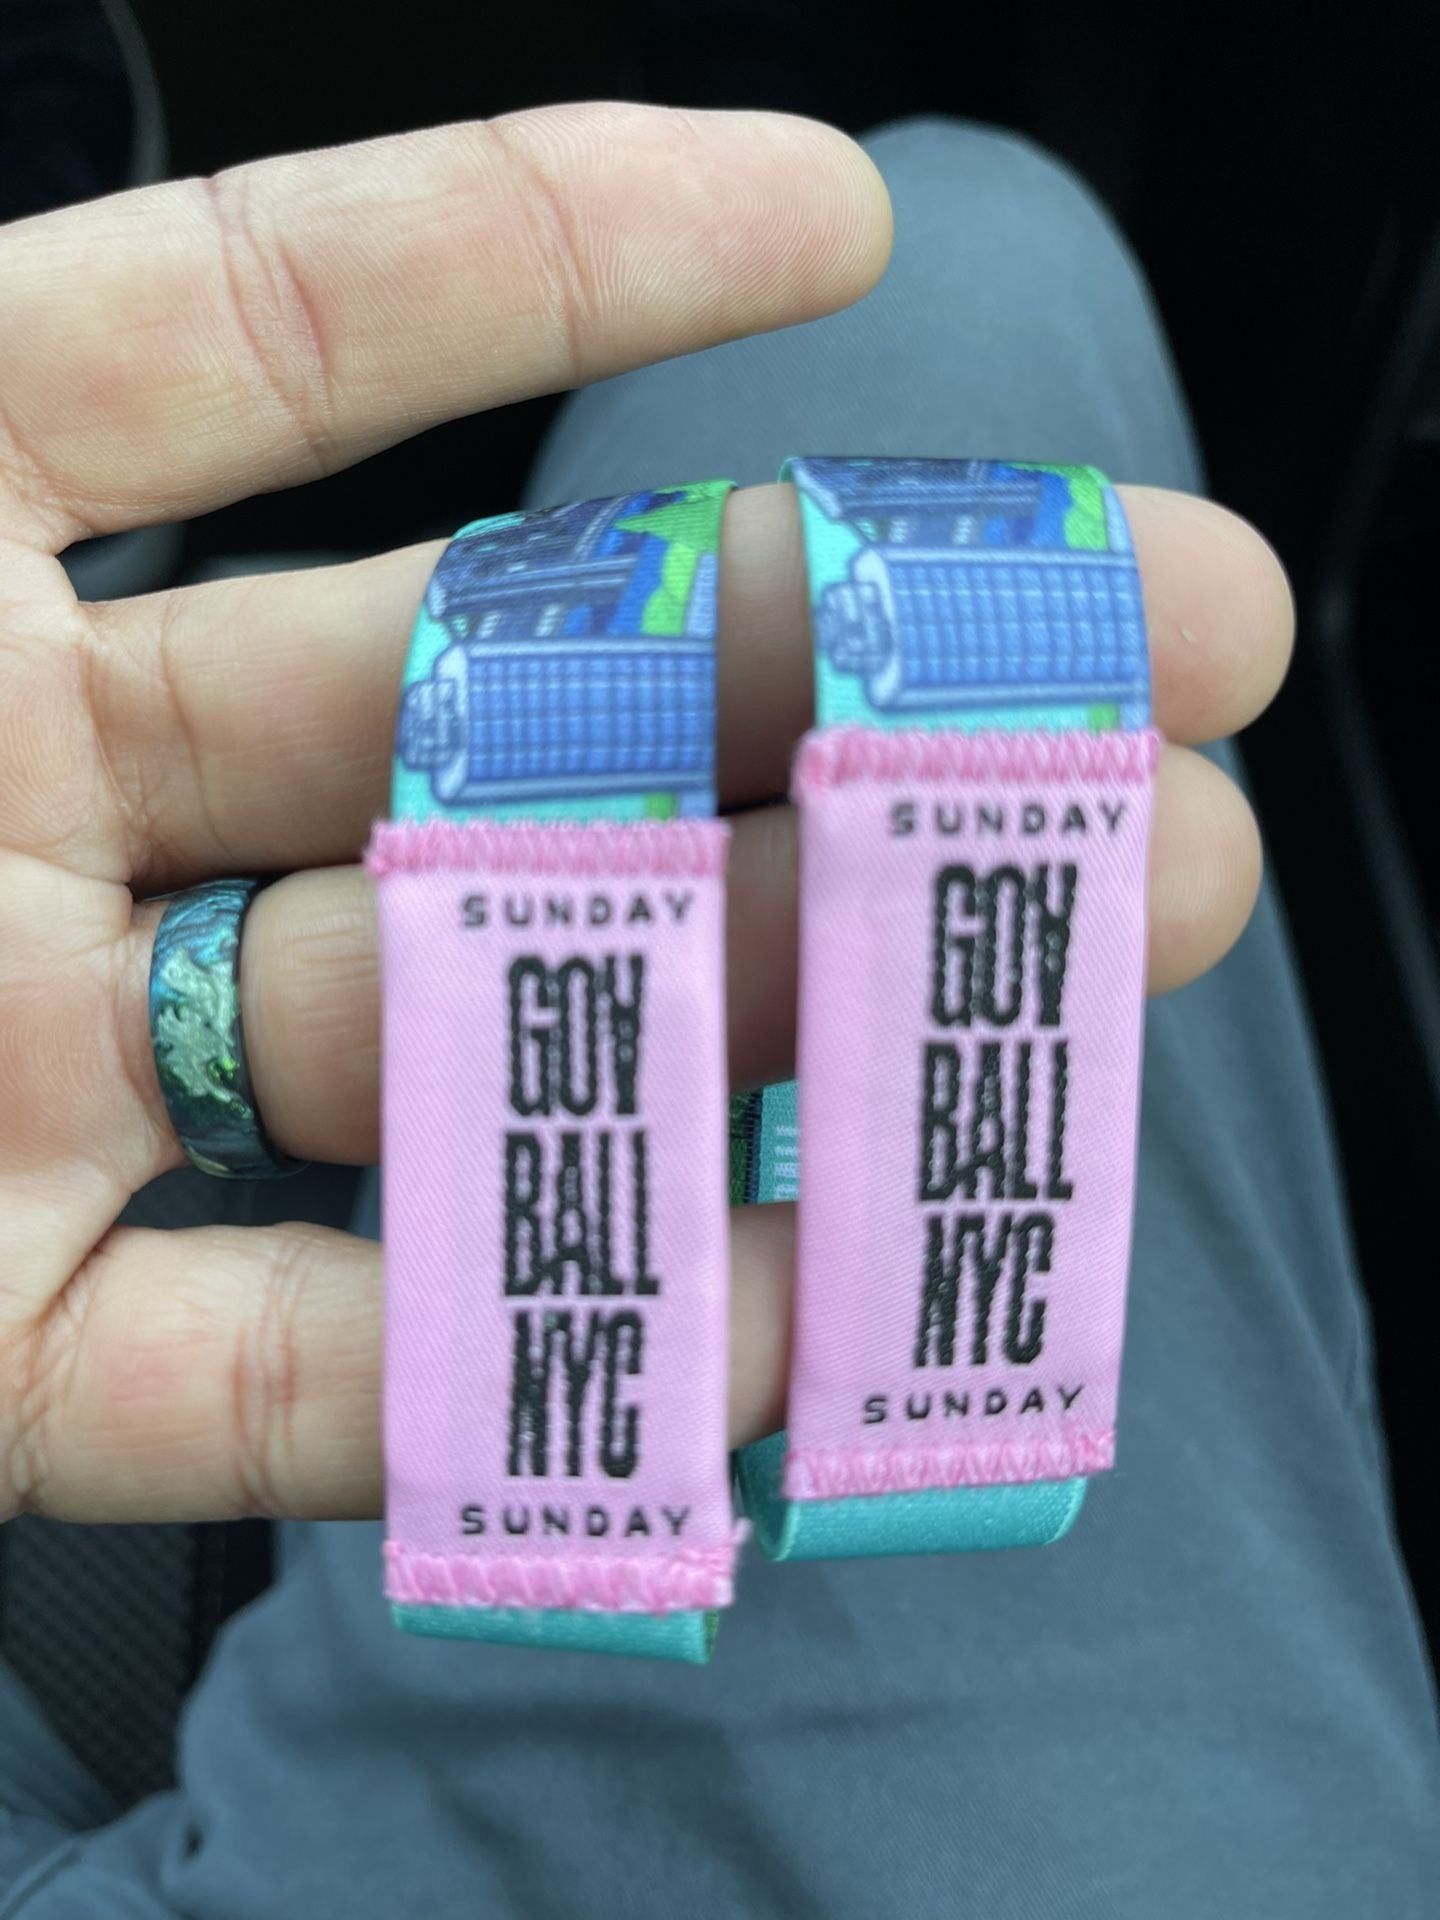 Governors Ball Sunday Tickets